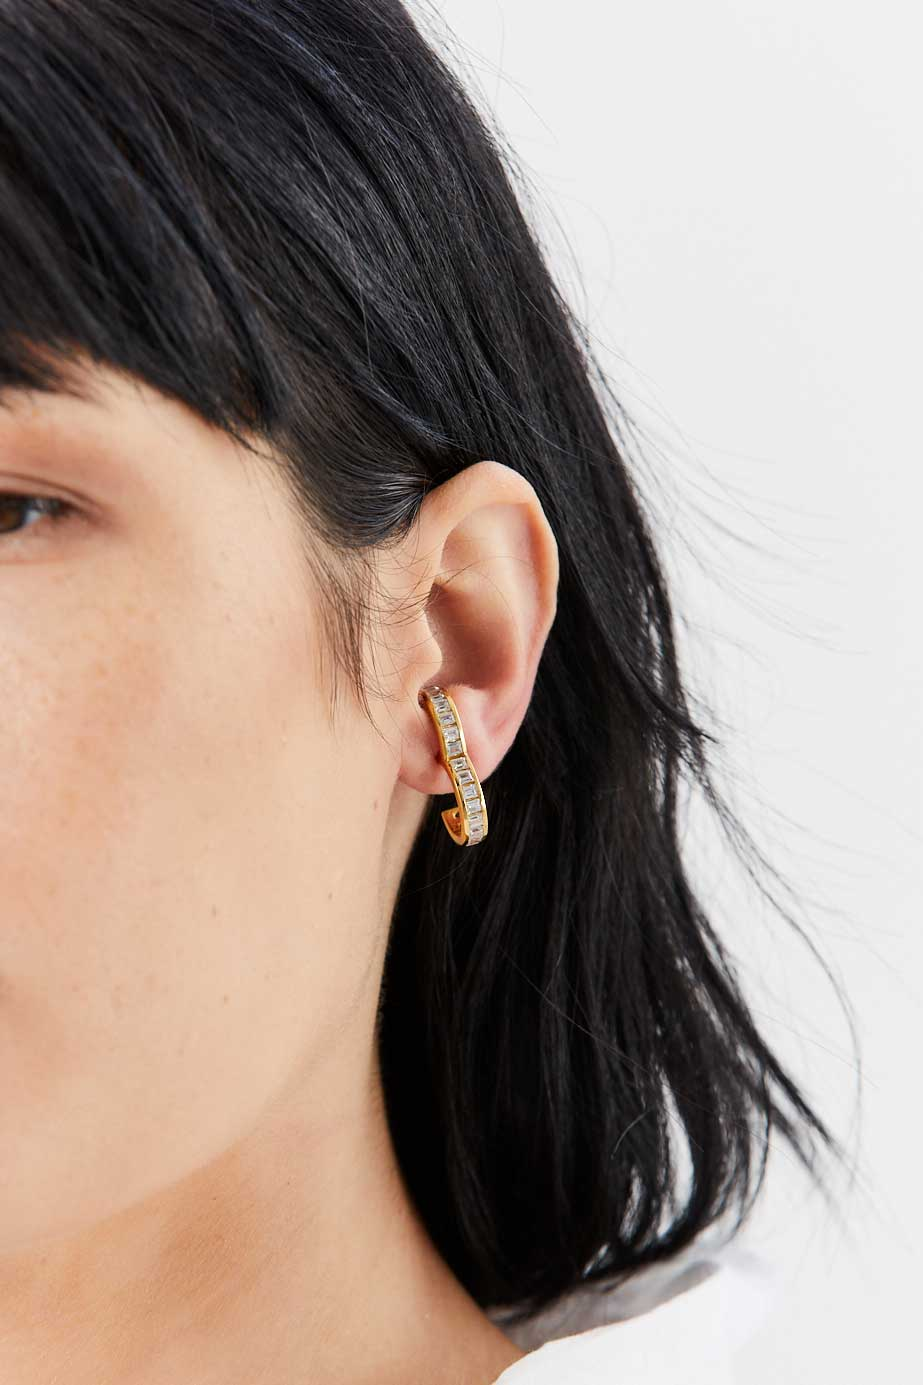 ALAN CROCETTI - Encrusted Rodeo Earring, Gold